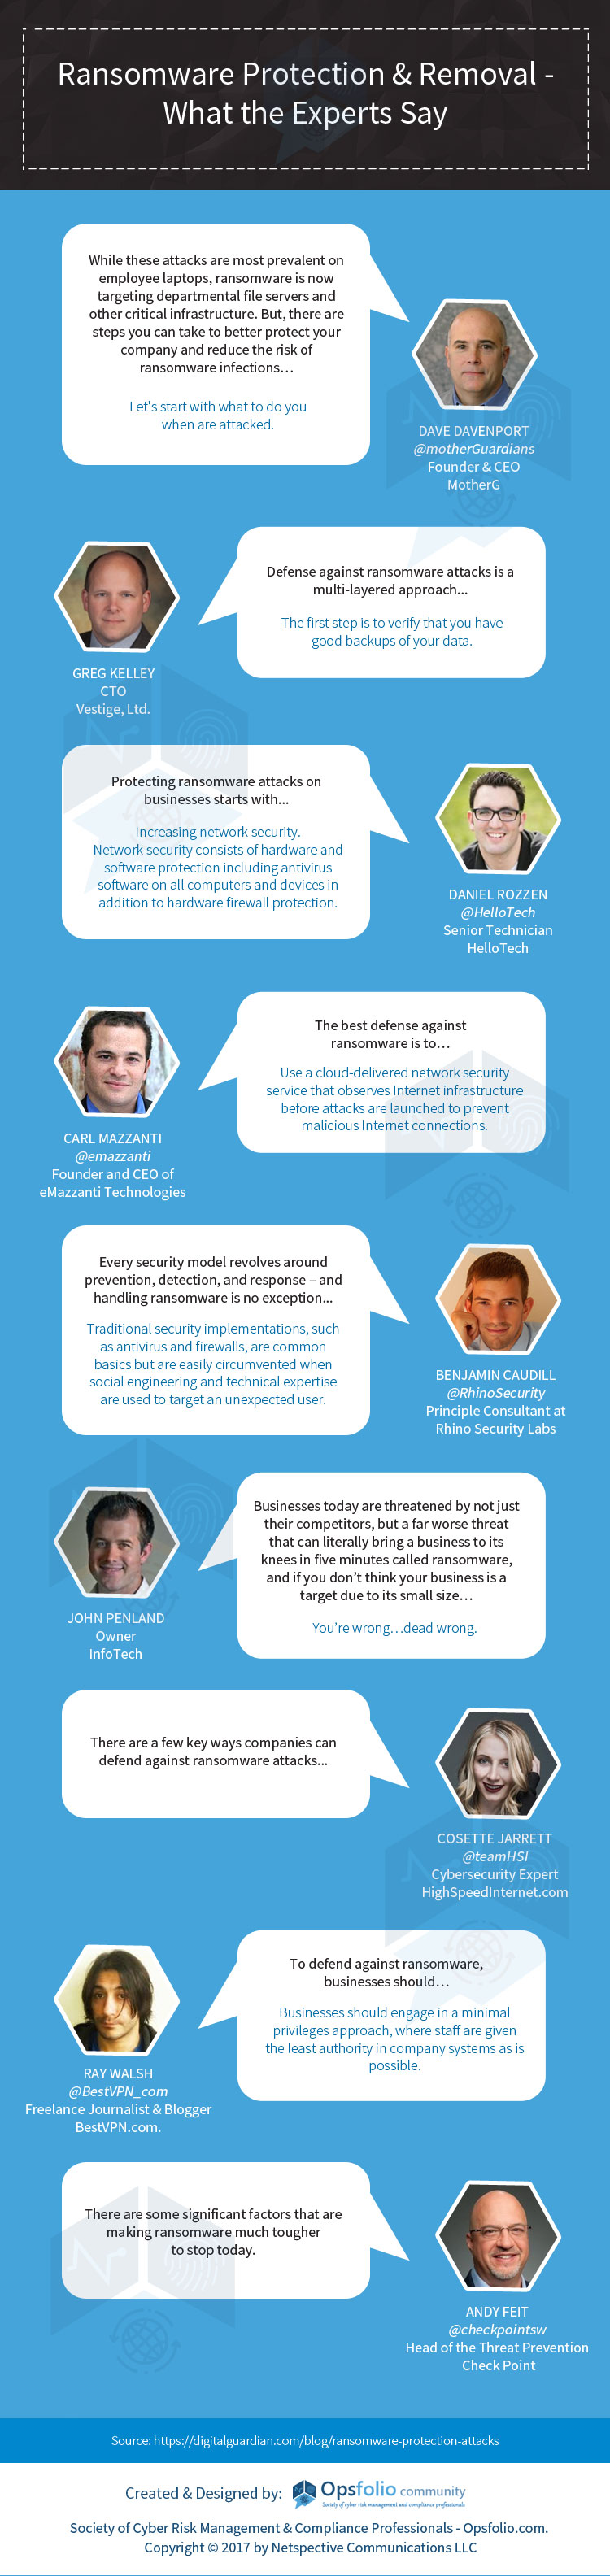 Ransomware Protection & Removal - What the Experts Say